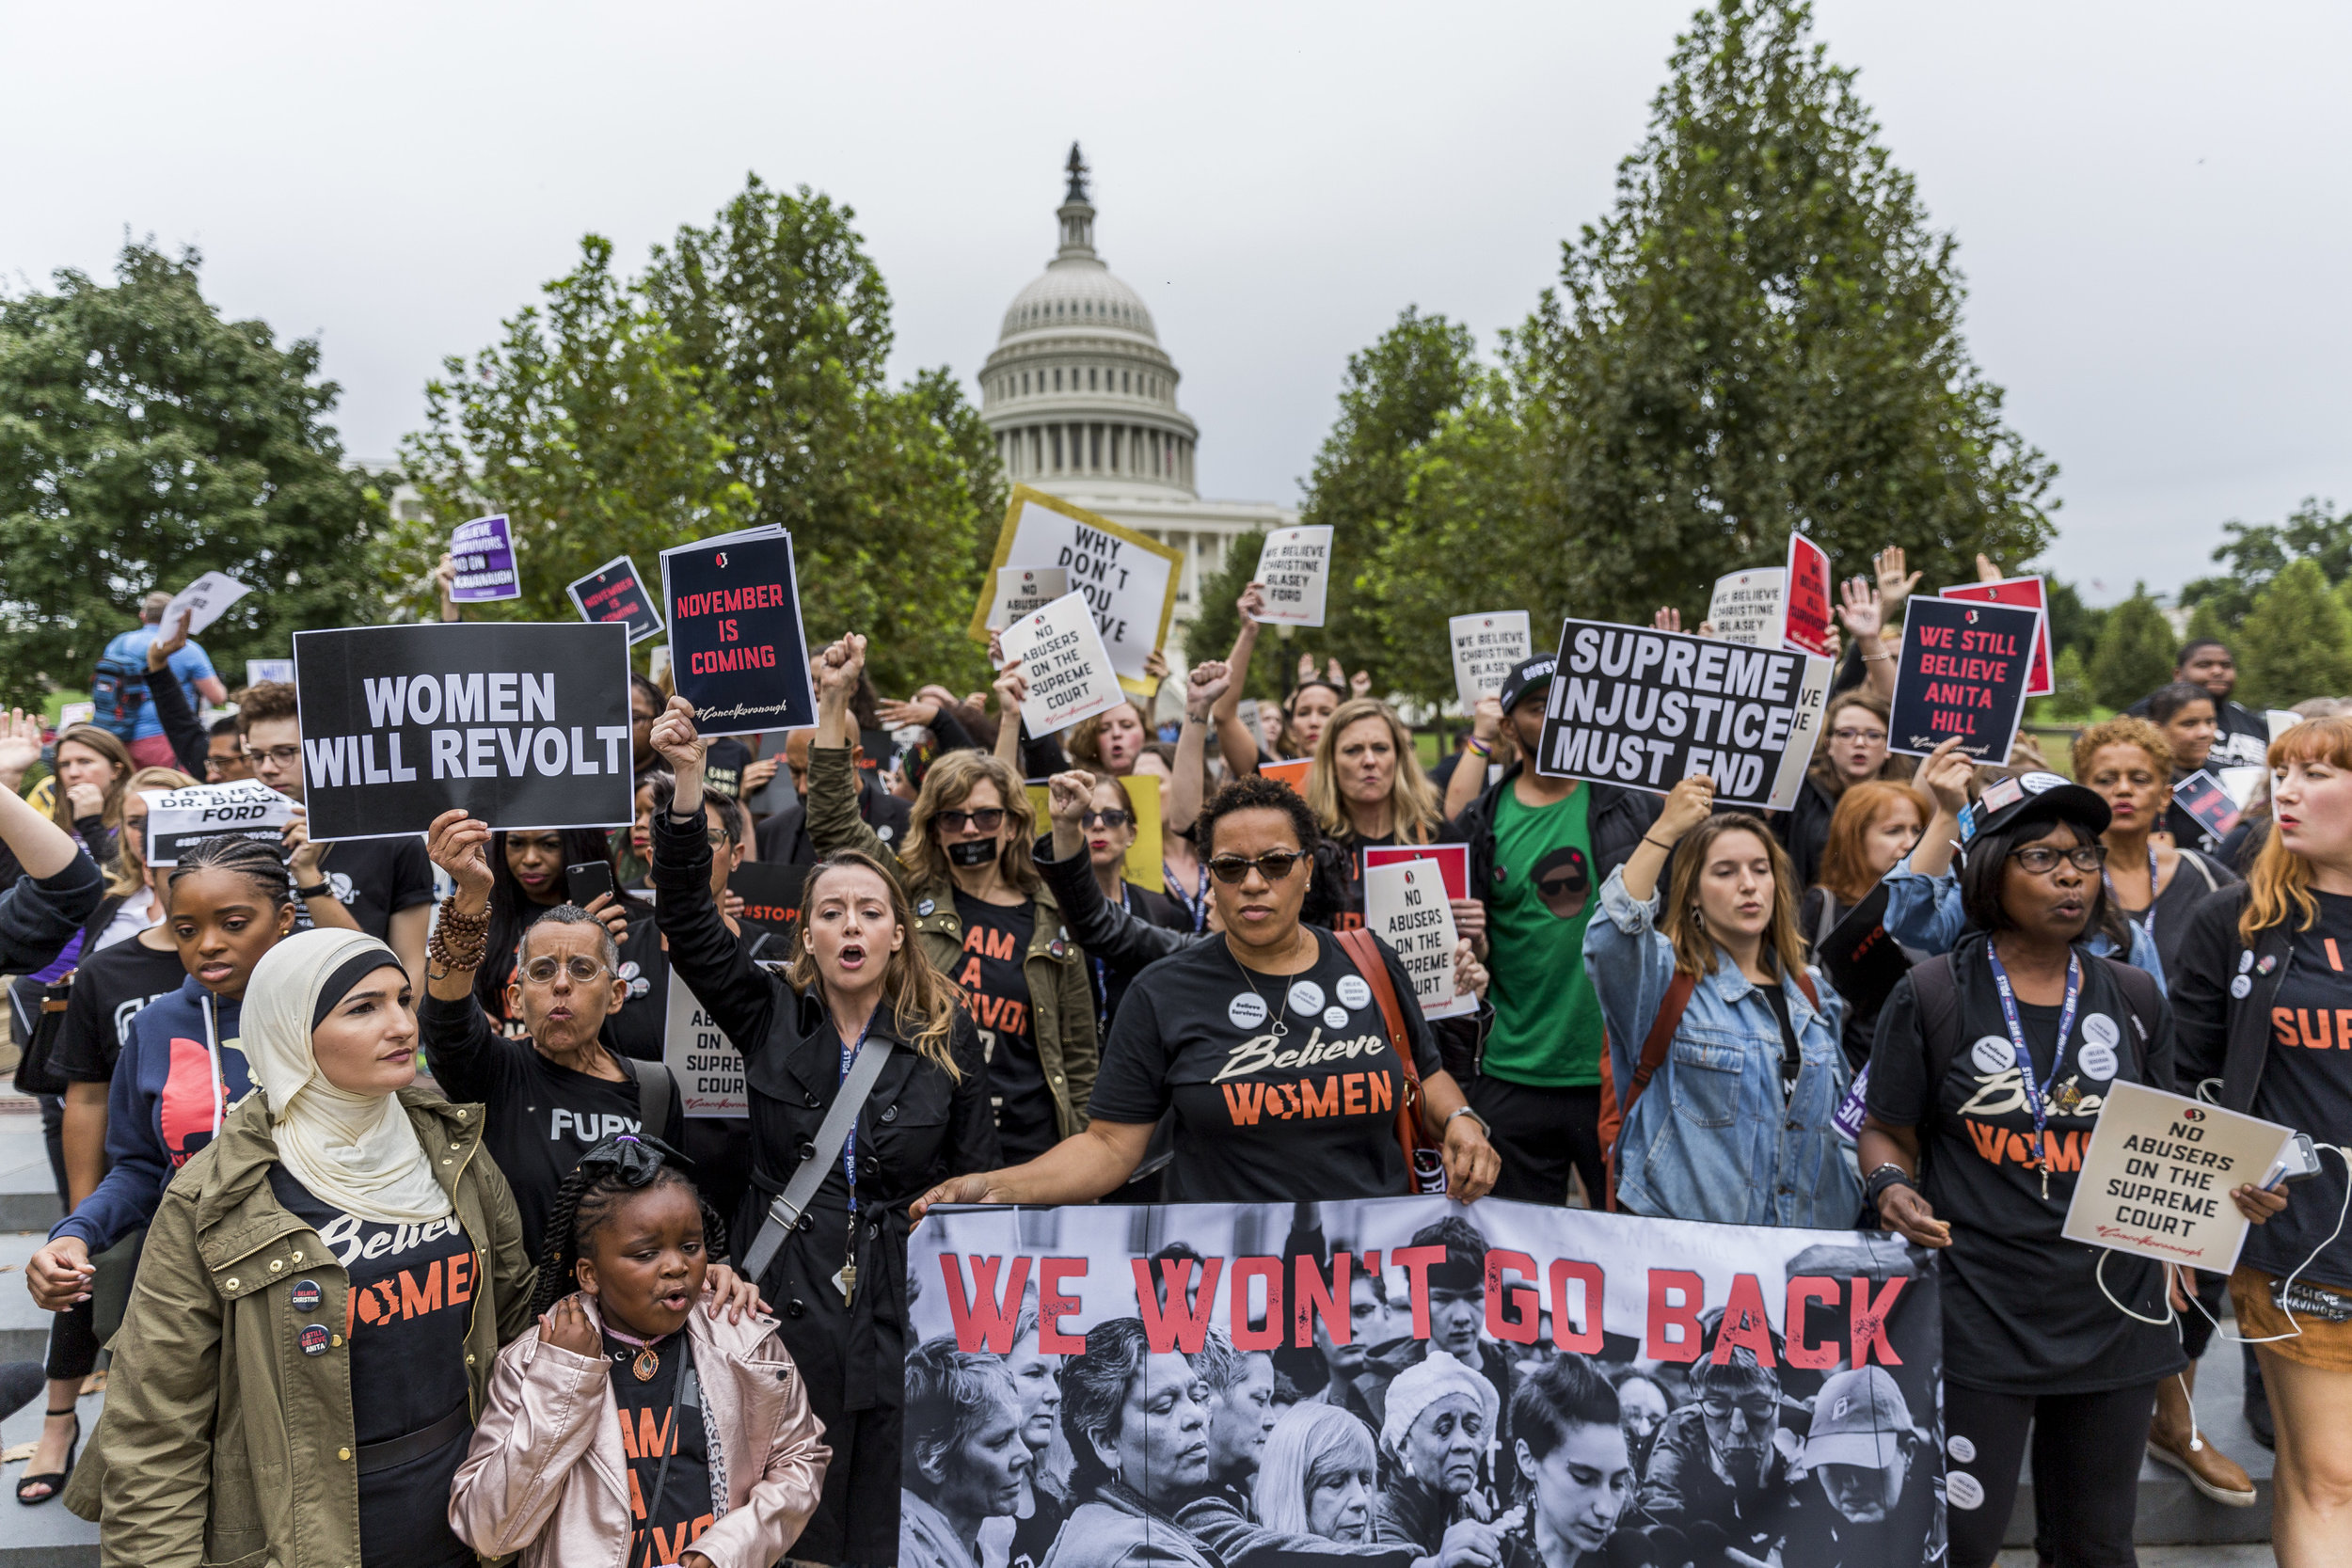 Protesters against the confirmation of Supreme Court nominee Brett Kavanaugh march to the reflecting pool in front of the United States Capitol on September 27th, 2018